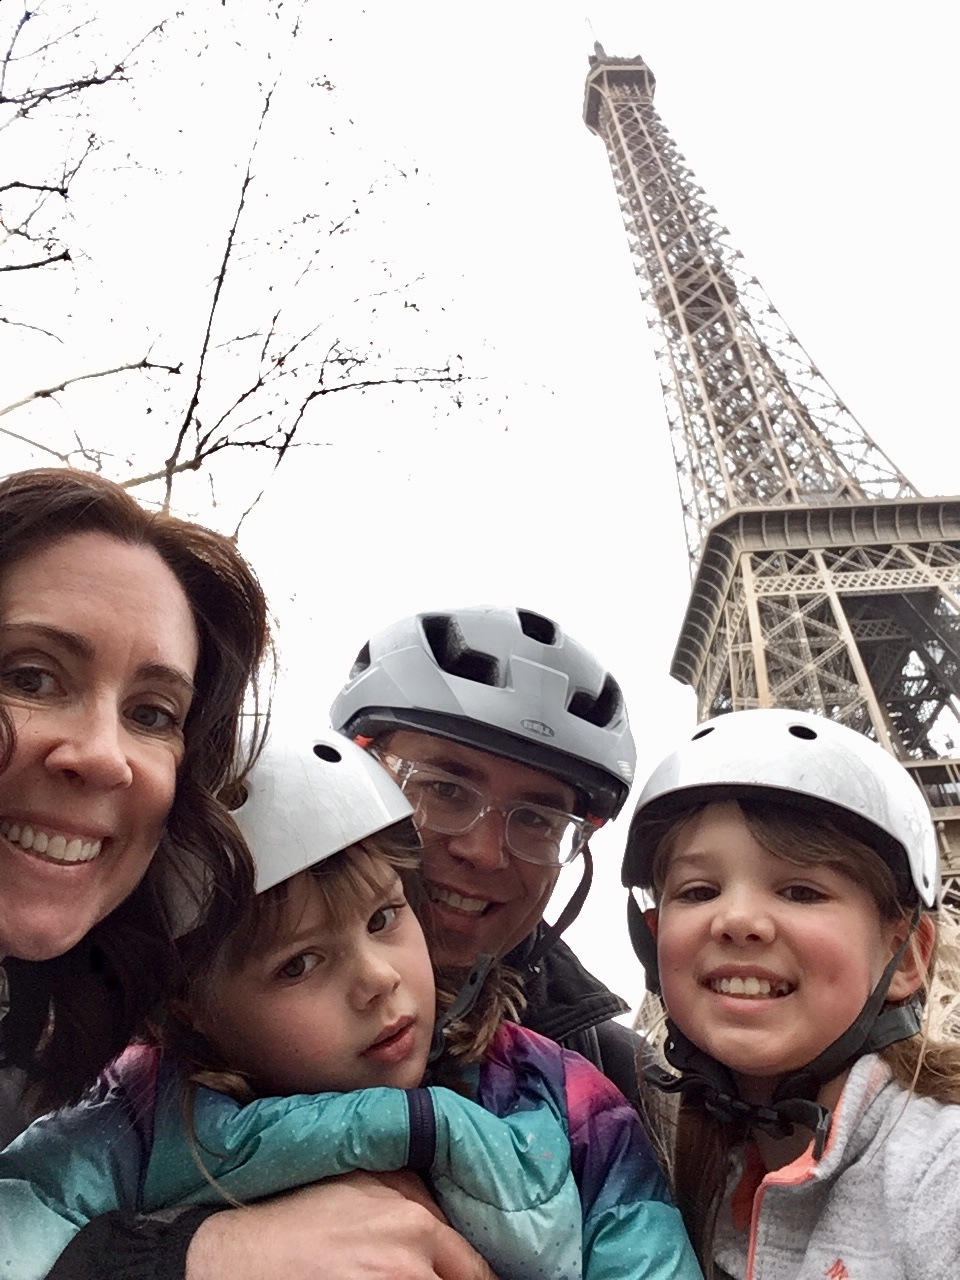 c'mon…one nice photo for mom? We squeaked this one out before meltdown number 5 of the day - s***t happens. We have learned to roll with it - tip…always know where your next croissant is coming from and never leave wherever without an extra battery pack for your cell phone.